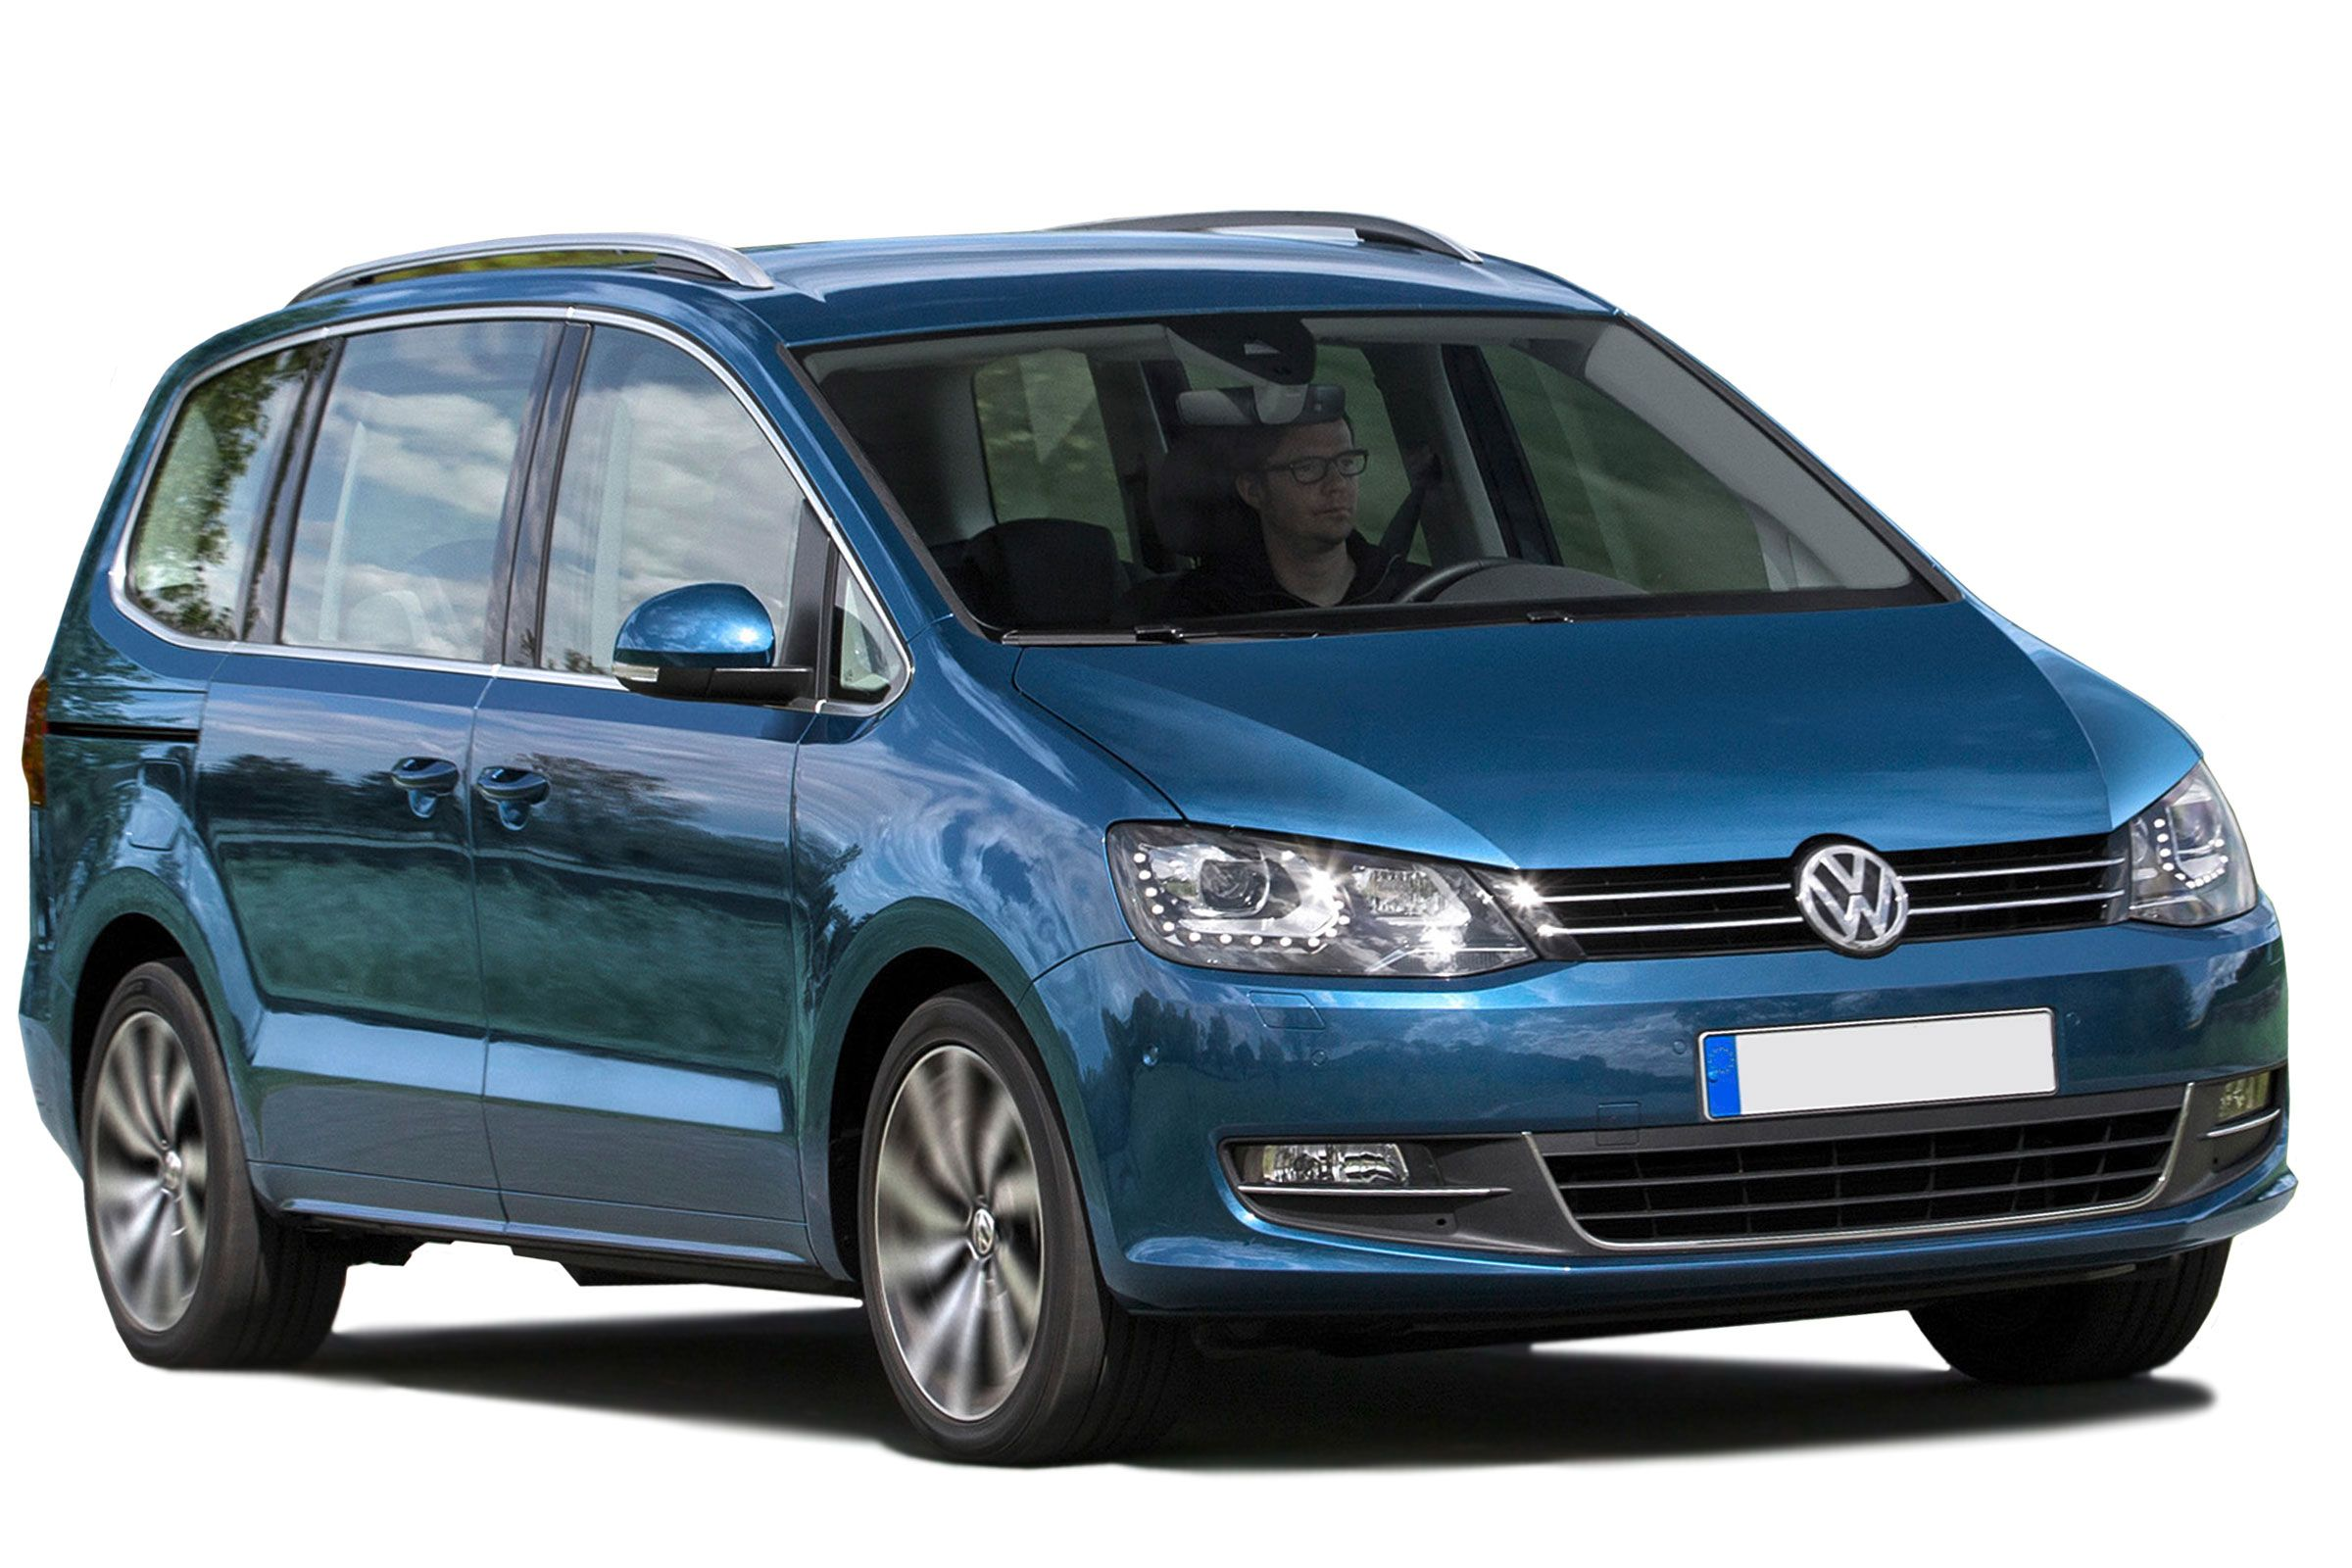 The Volkswagen Sharan Is An Mpv People Carrier That Offers Seven Seats A Range Of Efficient Petrol And Diesel Engines And A Vers Volkswagen Car Car Wallpapers